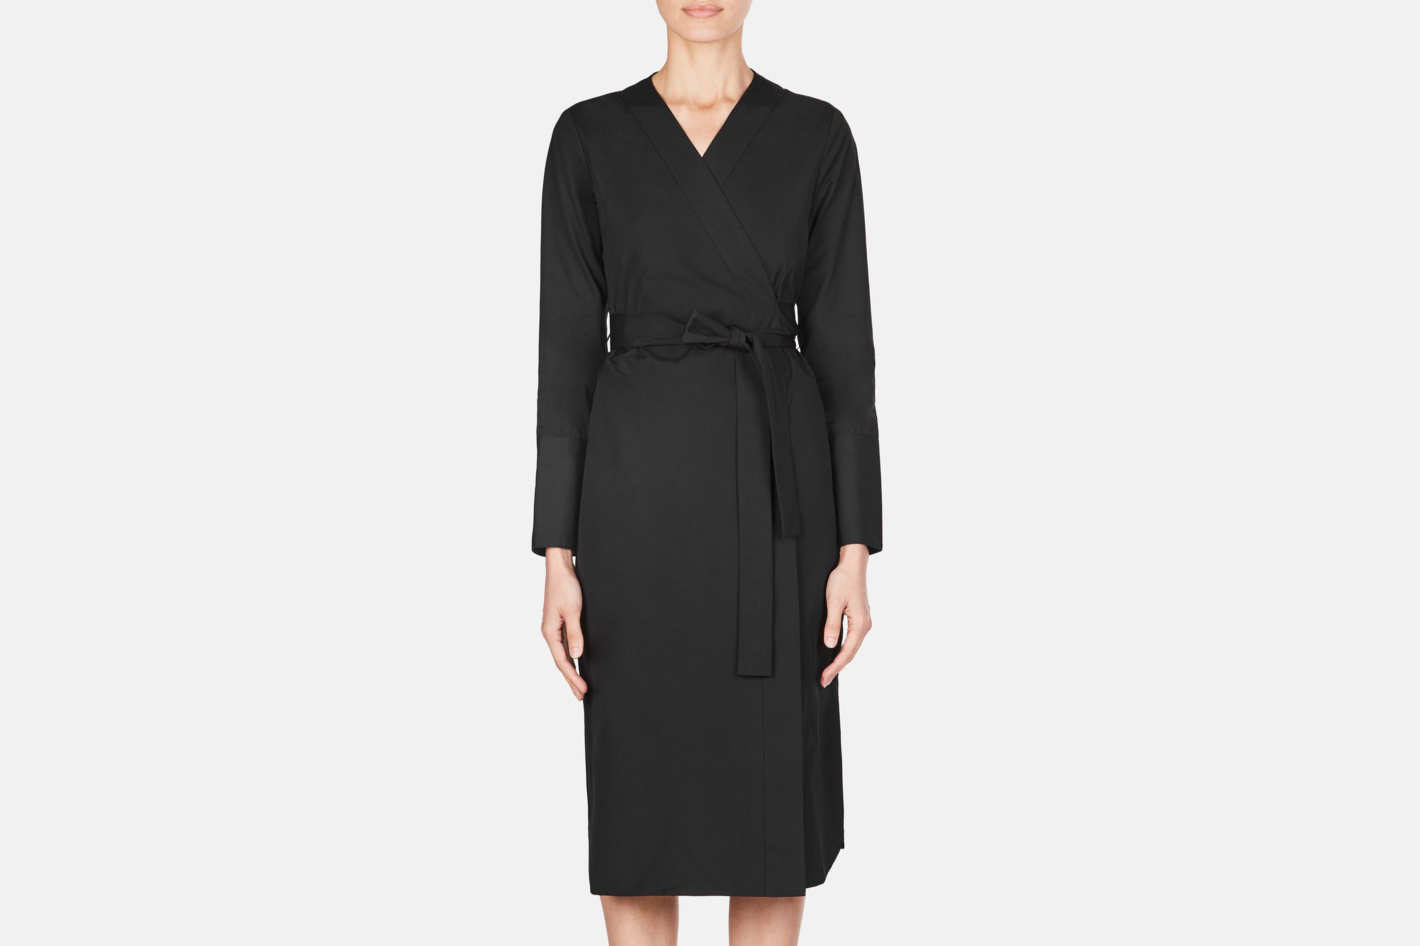 Protagonist Dress 70 Belted Wrap Dress